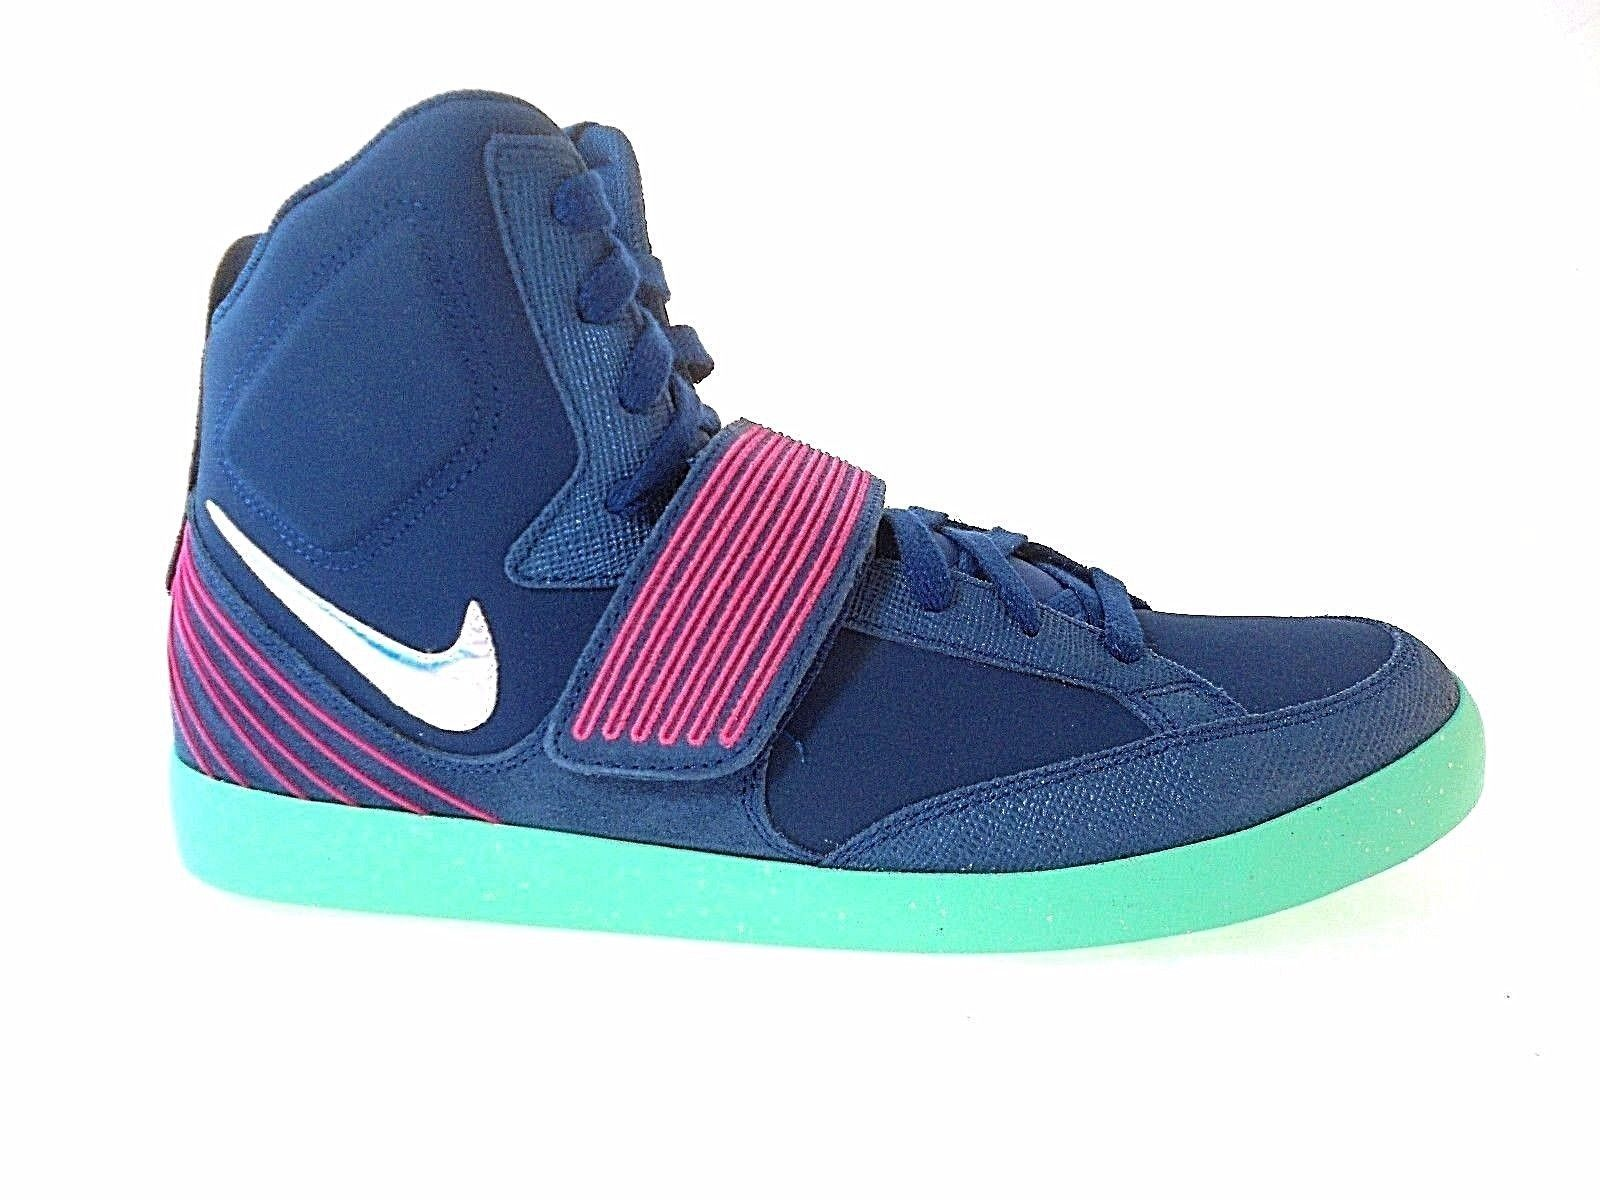 buy online b2274 44477 Nike Nsw Skystepper Men s Brave Blue Pink and 50 similar items